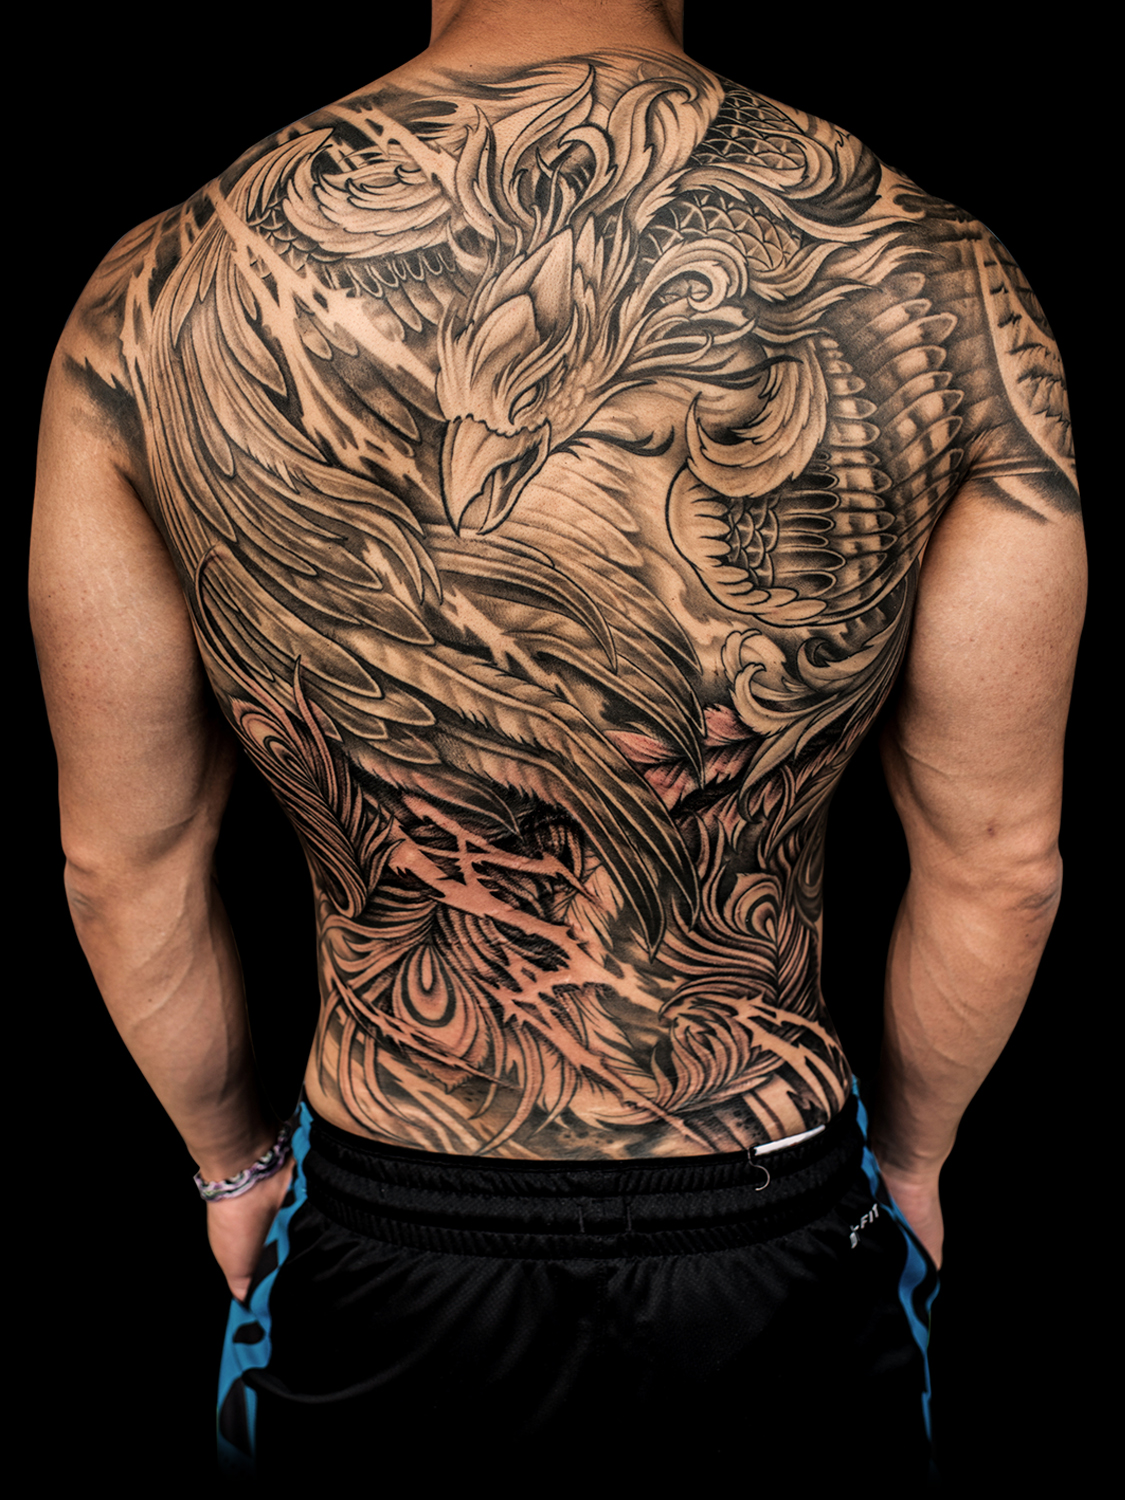 Asian style phoenix tattoo by Winson Tsai